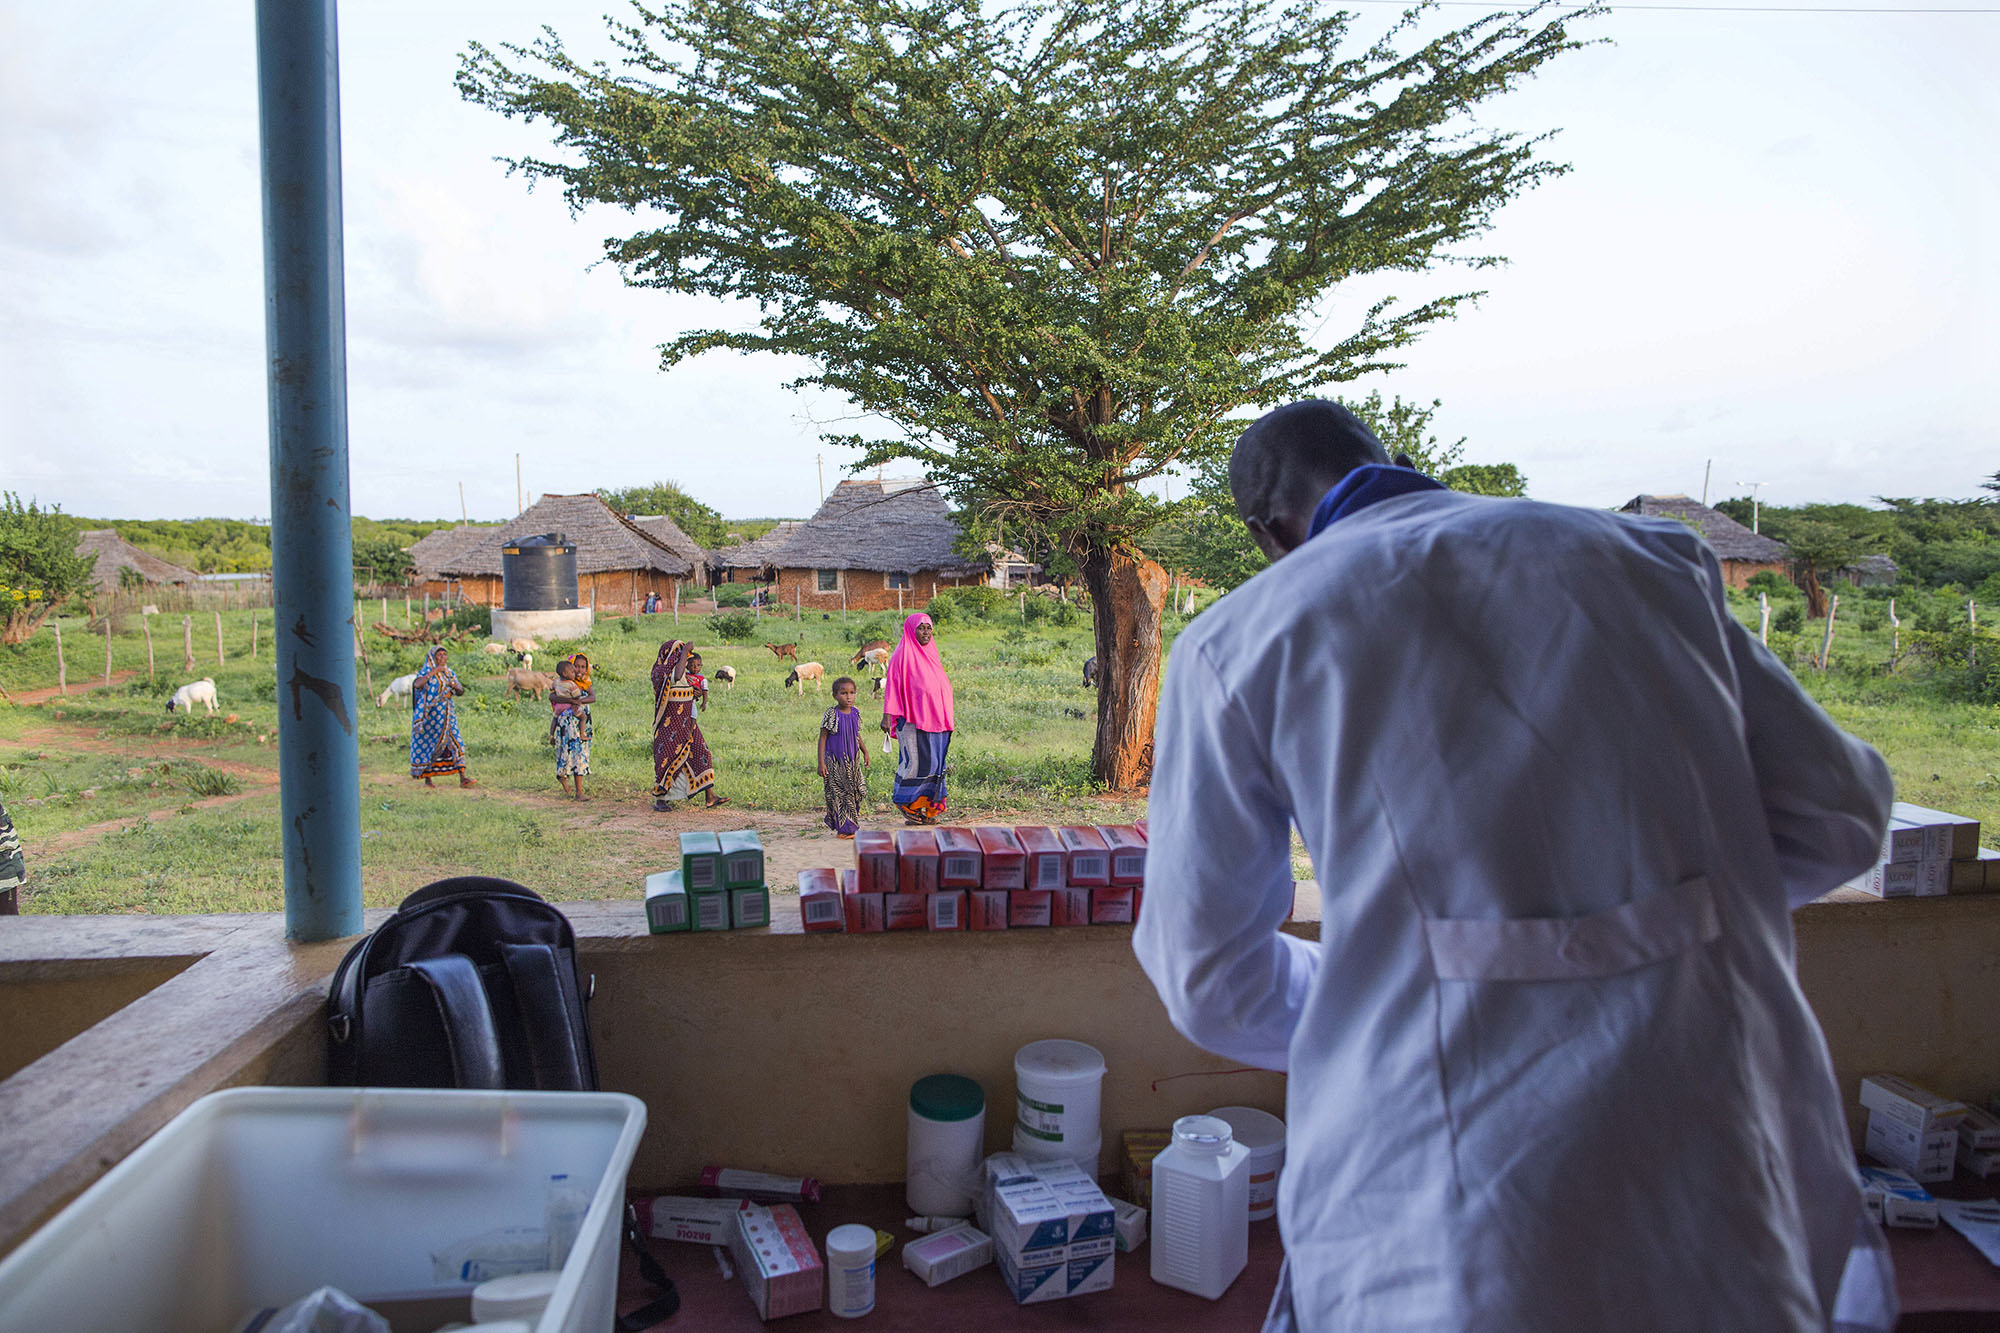 From-the-village-Mtangawanda-it-is-several-hours-travel-to-reach-the-nearest-health-facility.-The-mobile-clinic-here-is-used-by-hundreds-of-people-every-month